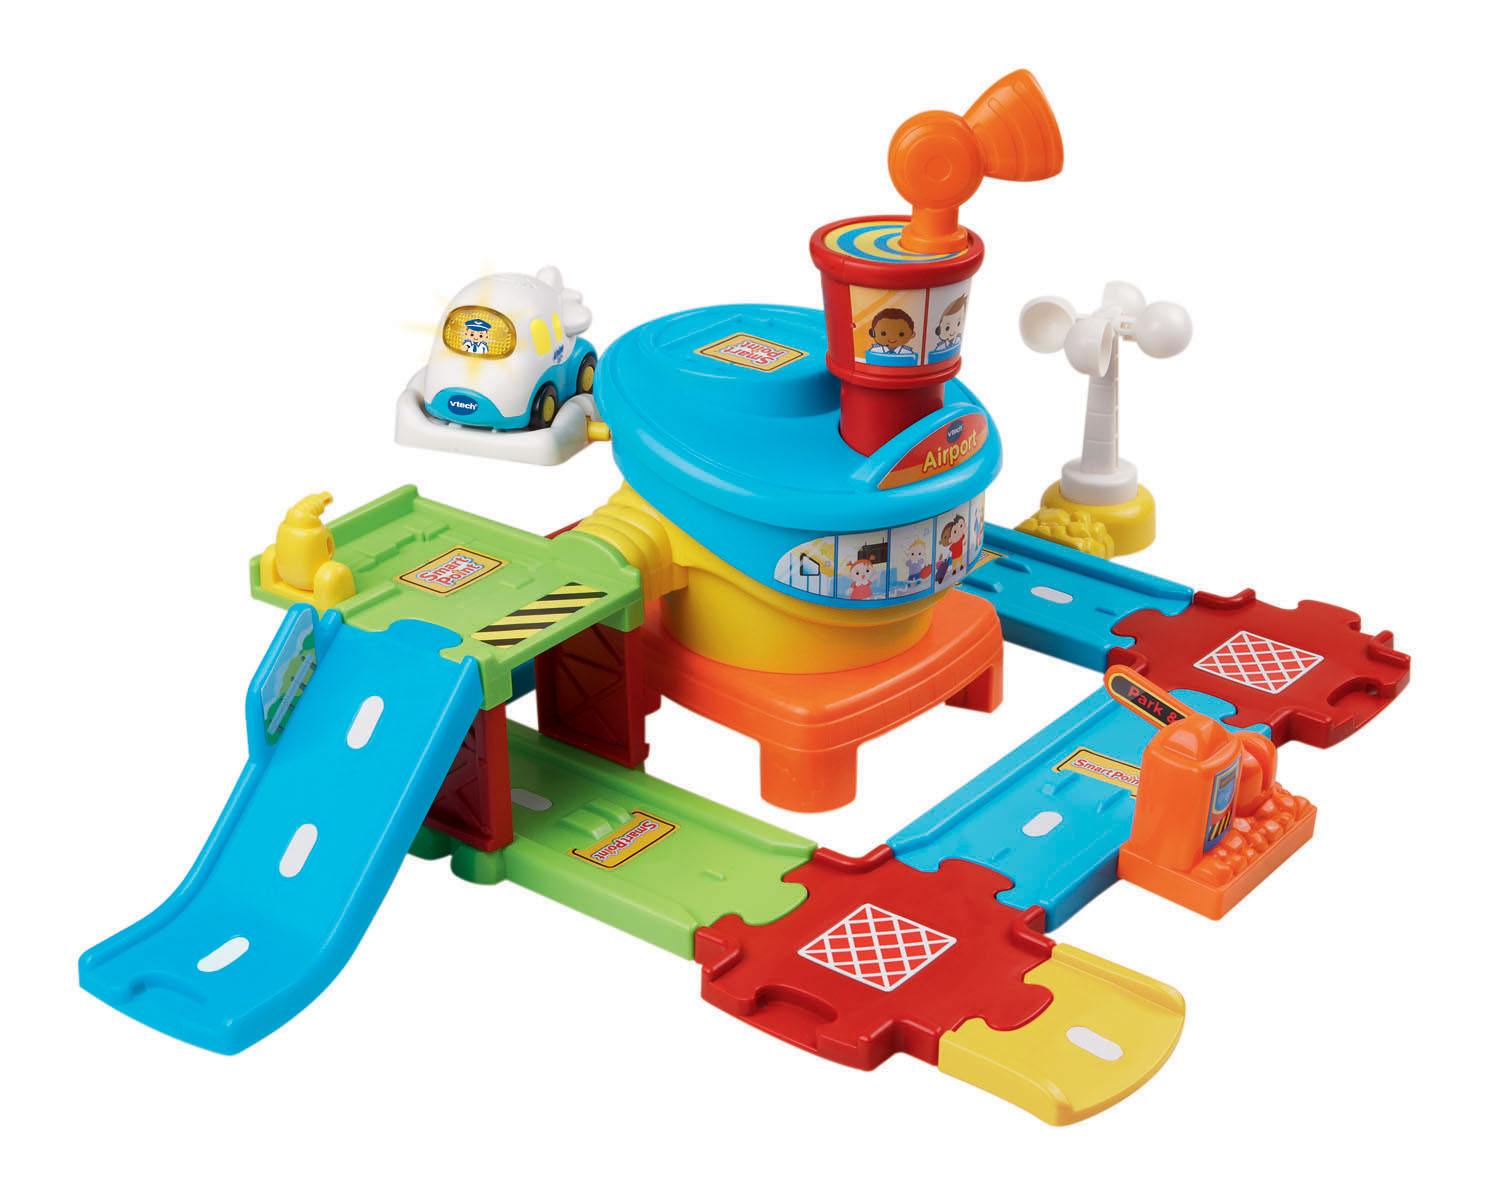 GGSW Airport Playset